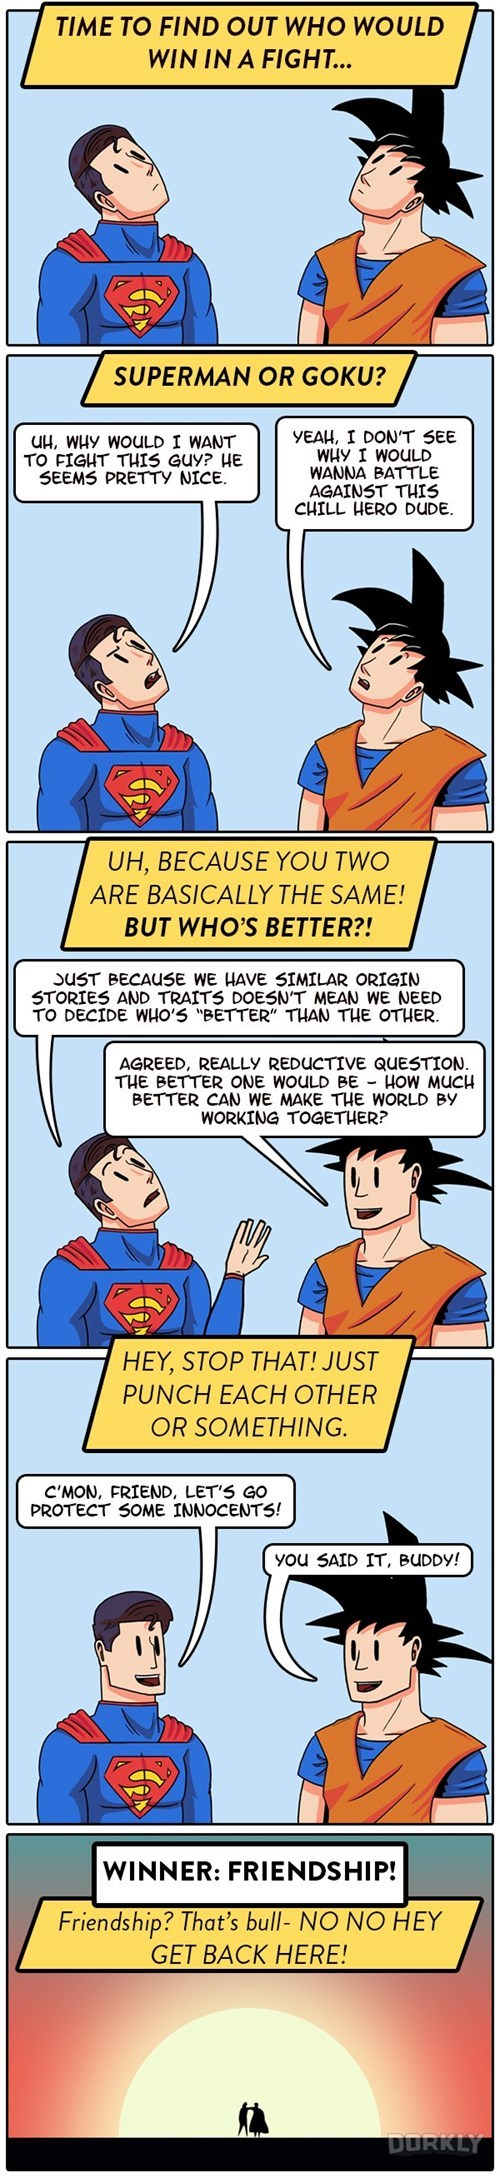 superheroes-superman-dc-vs-goku-dorkly-comic